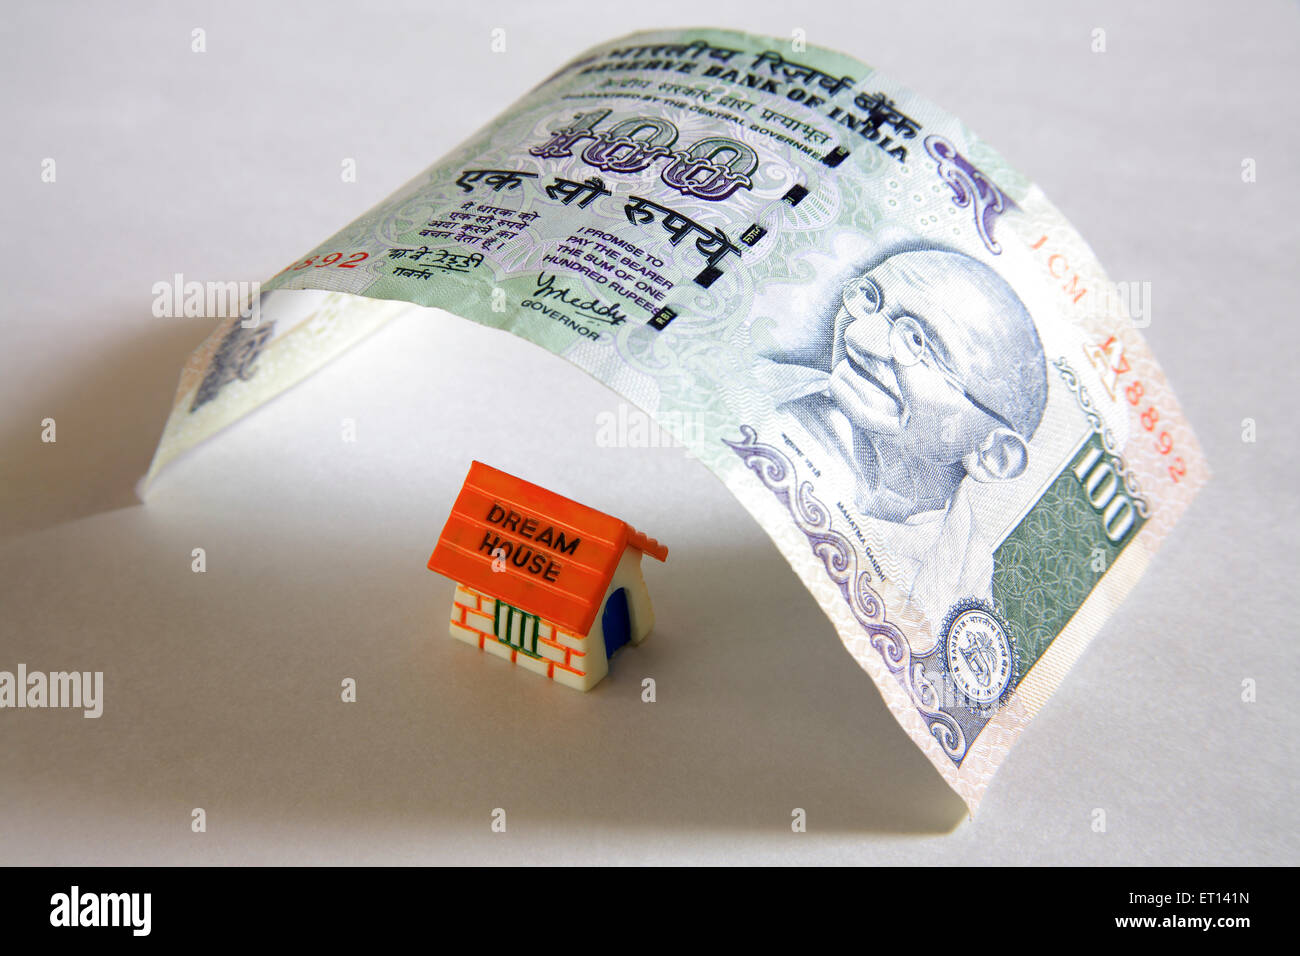 Plastic home model below notes of hundred rupees on white background - Stock Image